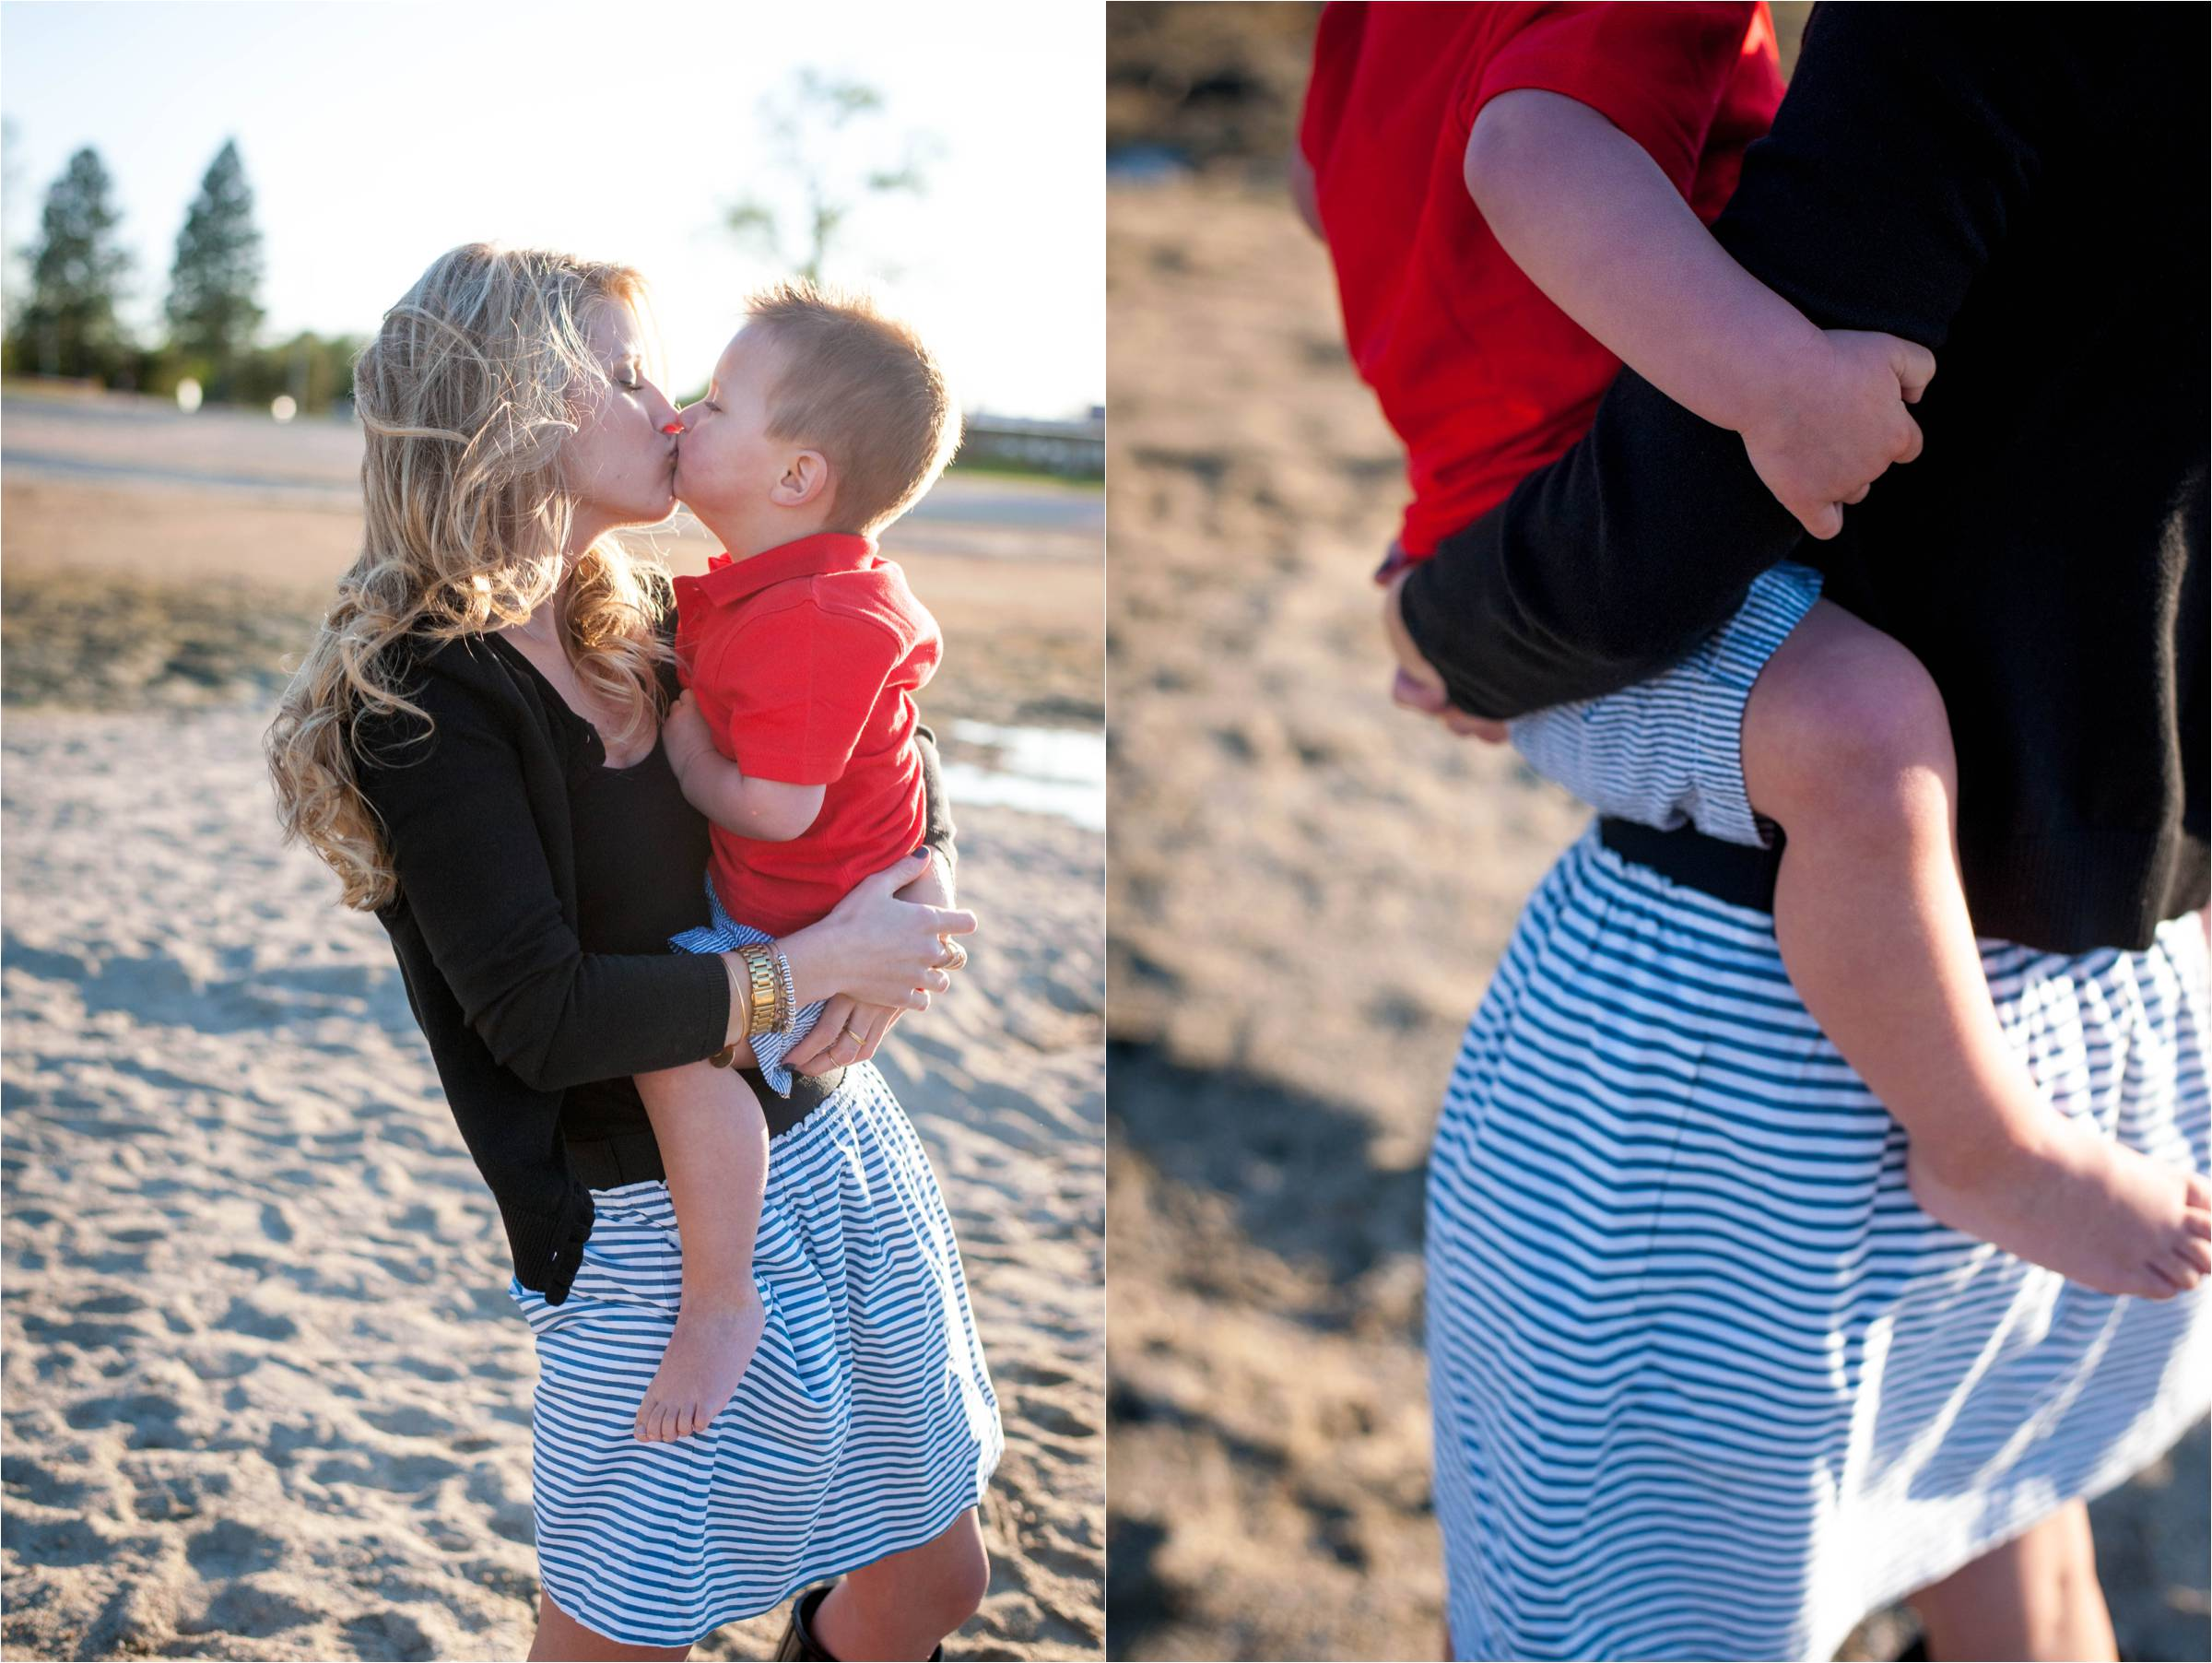 Janel-Gion-Photography-and-Design-Mommy-and-Me-Summer-Photo-Session-Sandpoint-Idaho_0013.jpg